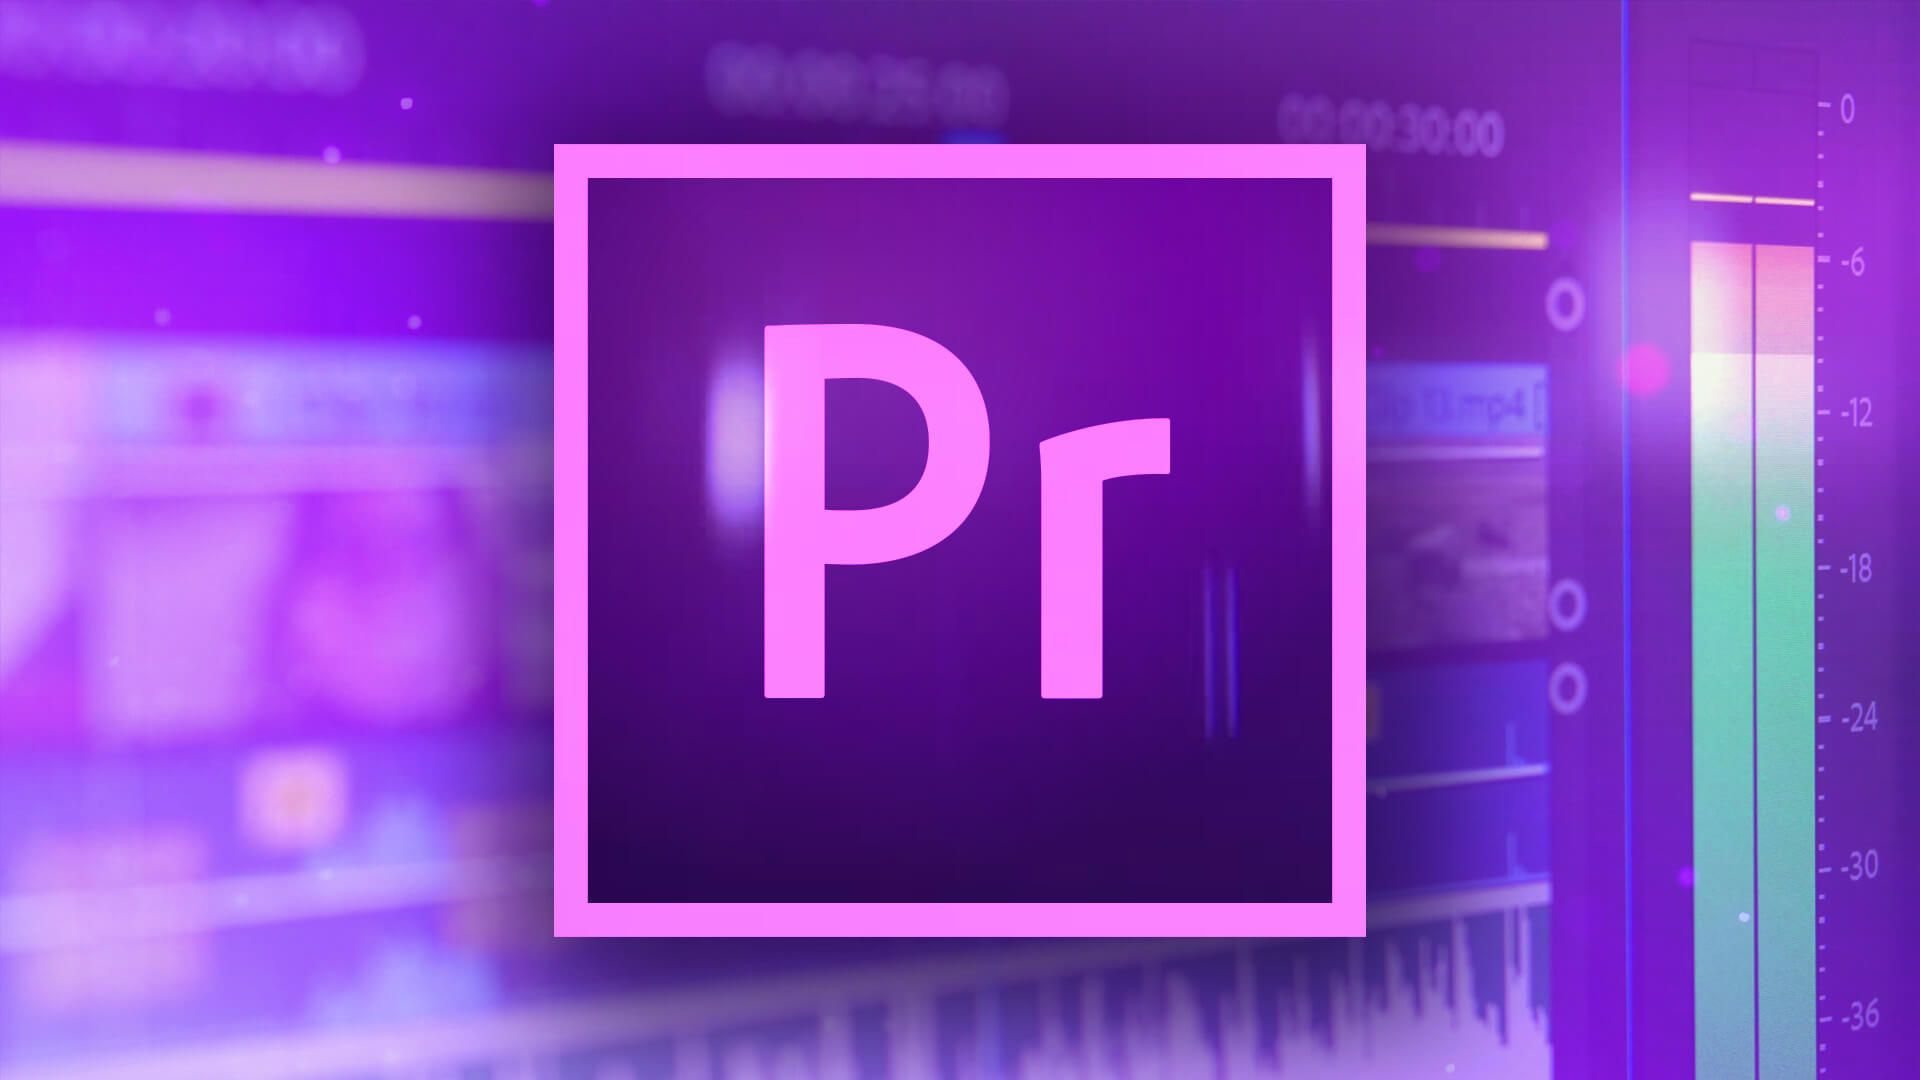 Adobe Premiere V14.9.0.52 Crack with Torrent [Full Download] 2021